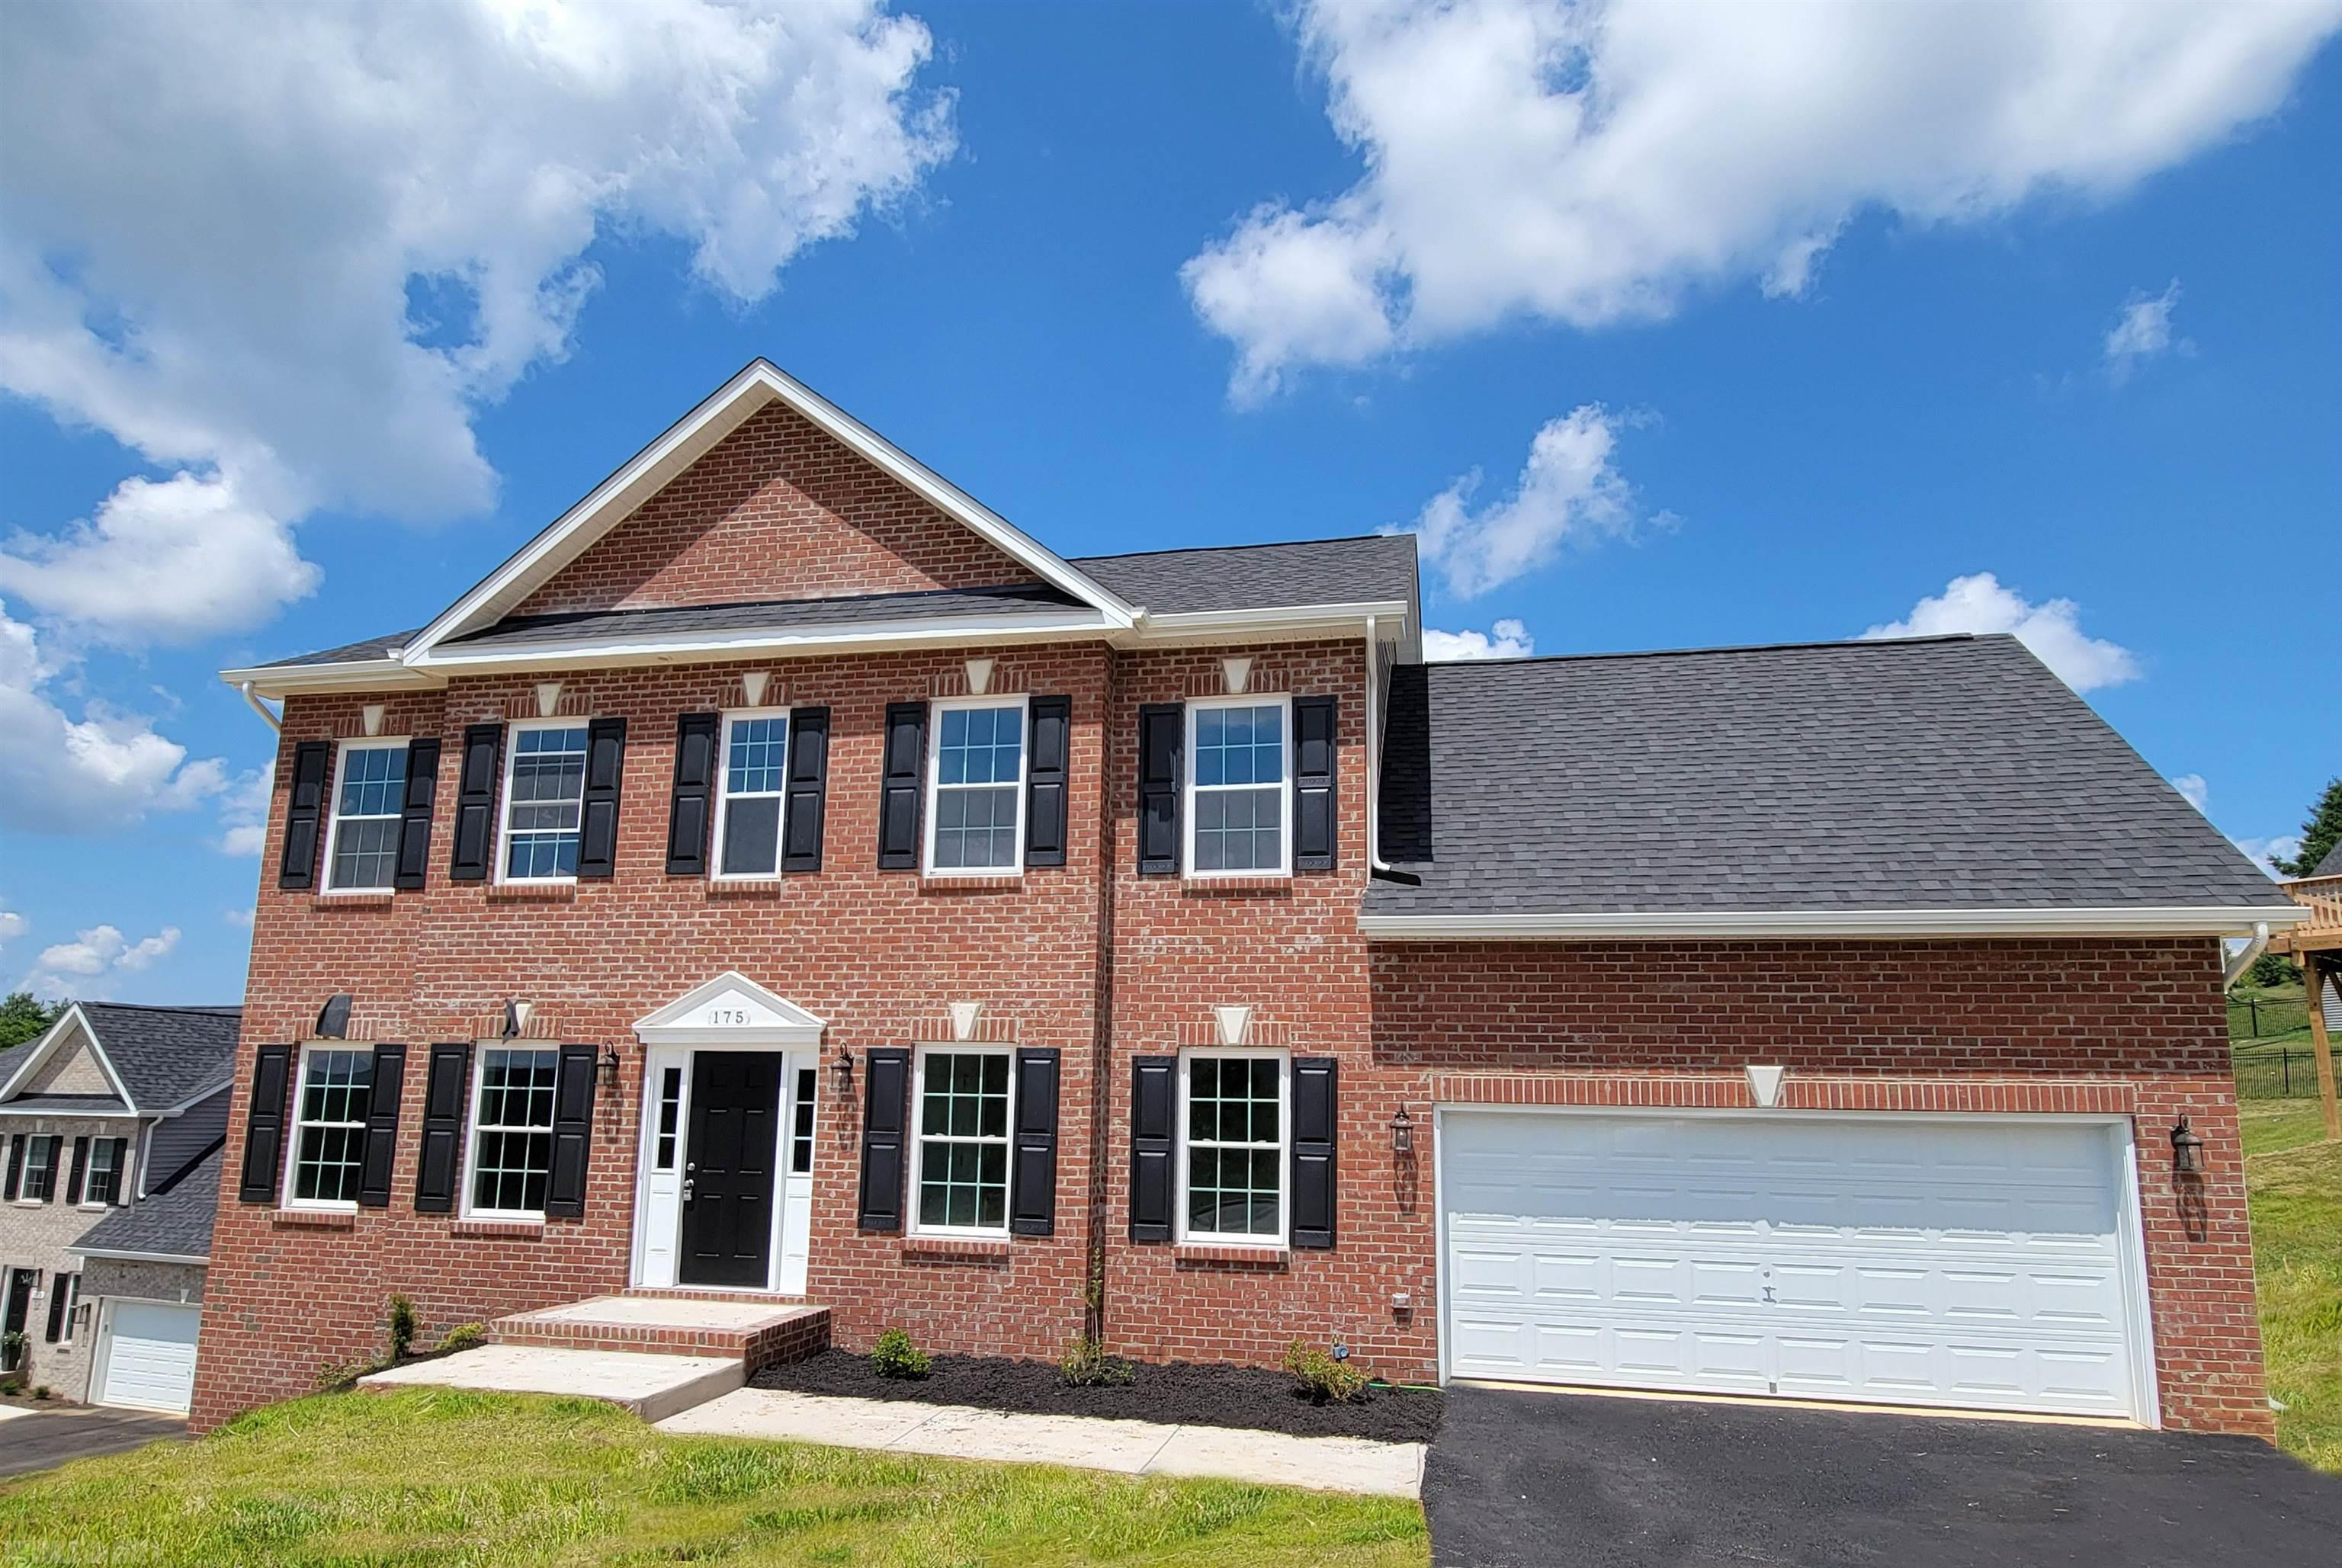 This is a pre-construction listing that is not yet built. Our Lexington B style home offers 2,228 square feet above grade, and 9' framed walls on first floor with smooth drywall finish. This house plan incorporates hardwoods in the foyer, dining, kitchen and half bath, ceramic tile in the baths and laundry, and carpet throughout remaining areas. Oak treads to the second floor where applicable. The master shower offers ceramic tiled walls! Premium Tahoe cabinets by Timberlake in the kitchen make the home even more beautiful. The kitchen counter tops are luxurious granite and the bathrooms are cultured marble. Crown molding can be found in the dining room and master bedroom, as well as chair rail with wainscoting in the dining room. The exterior finishes consist of double-hung windows, brick, siding, and architectural shingles. Kensington is conveniently located in Christiansburg off Mud Pike Road and is adjacent the Christiansburg Middle School.